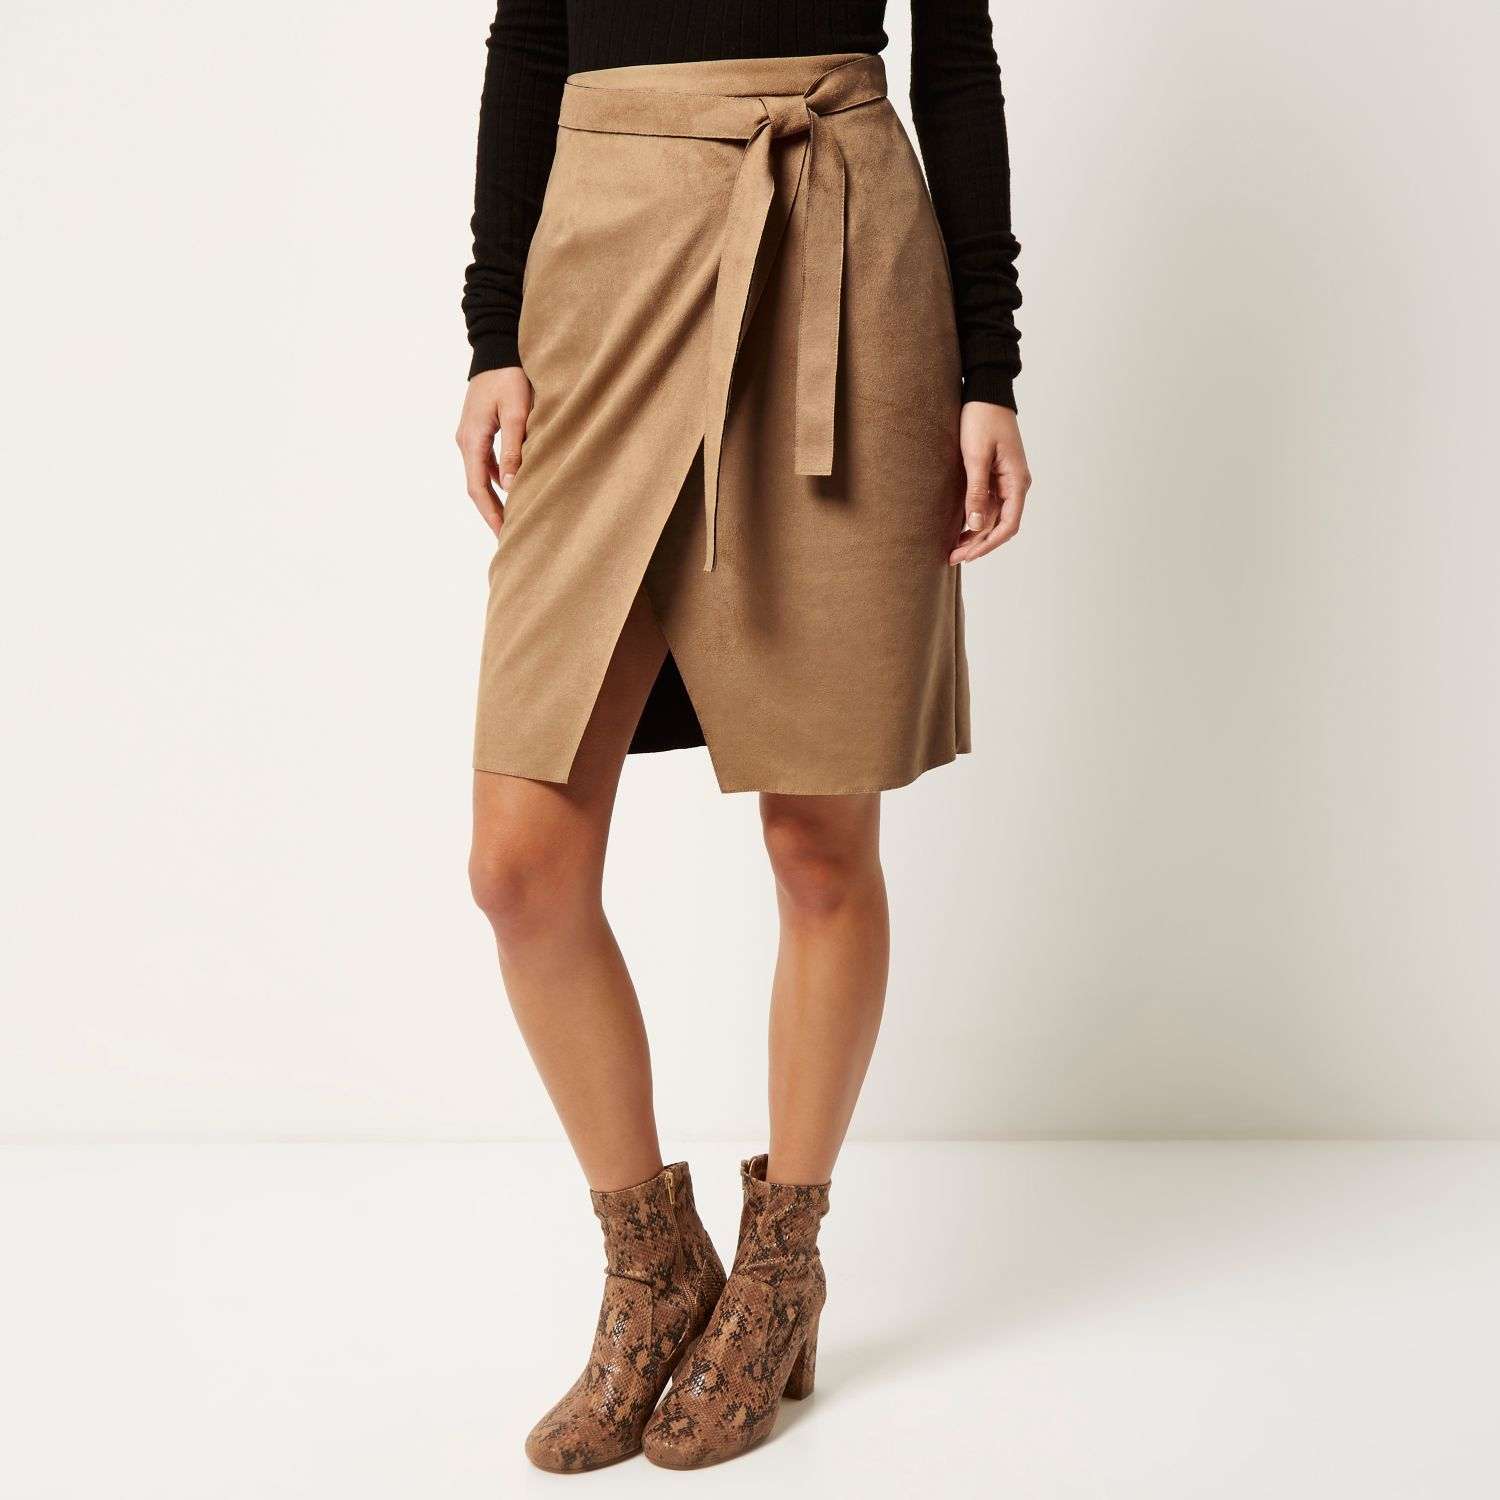 River island Brown Faux Suede Tie Waist Skirt in Natural | Lyst